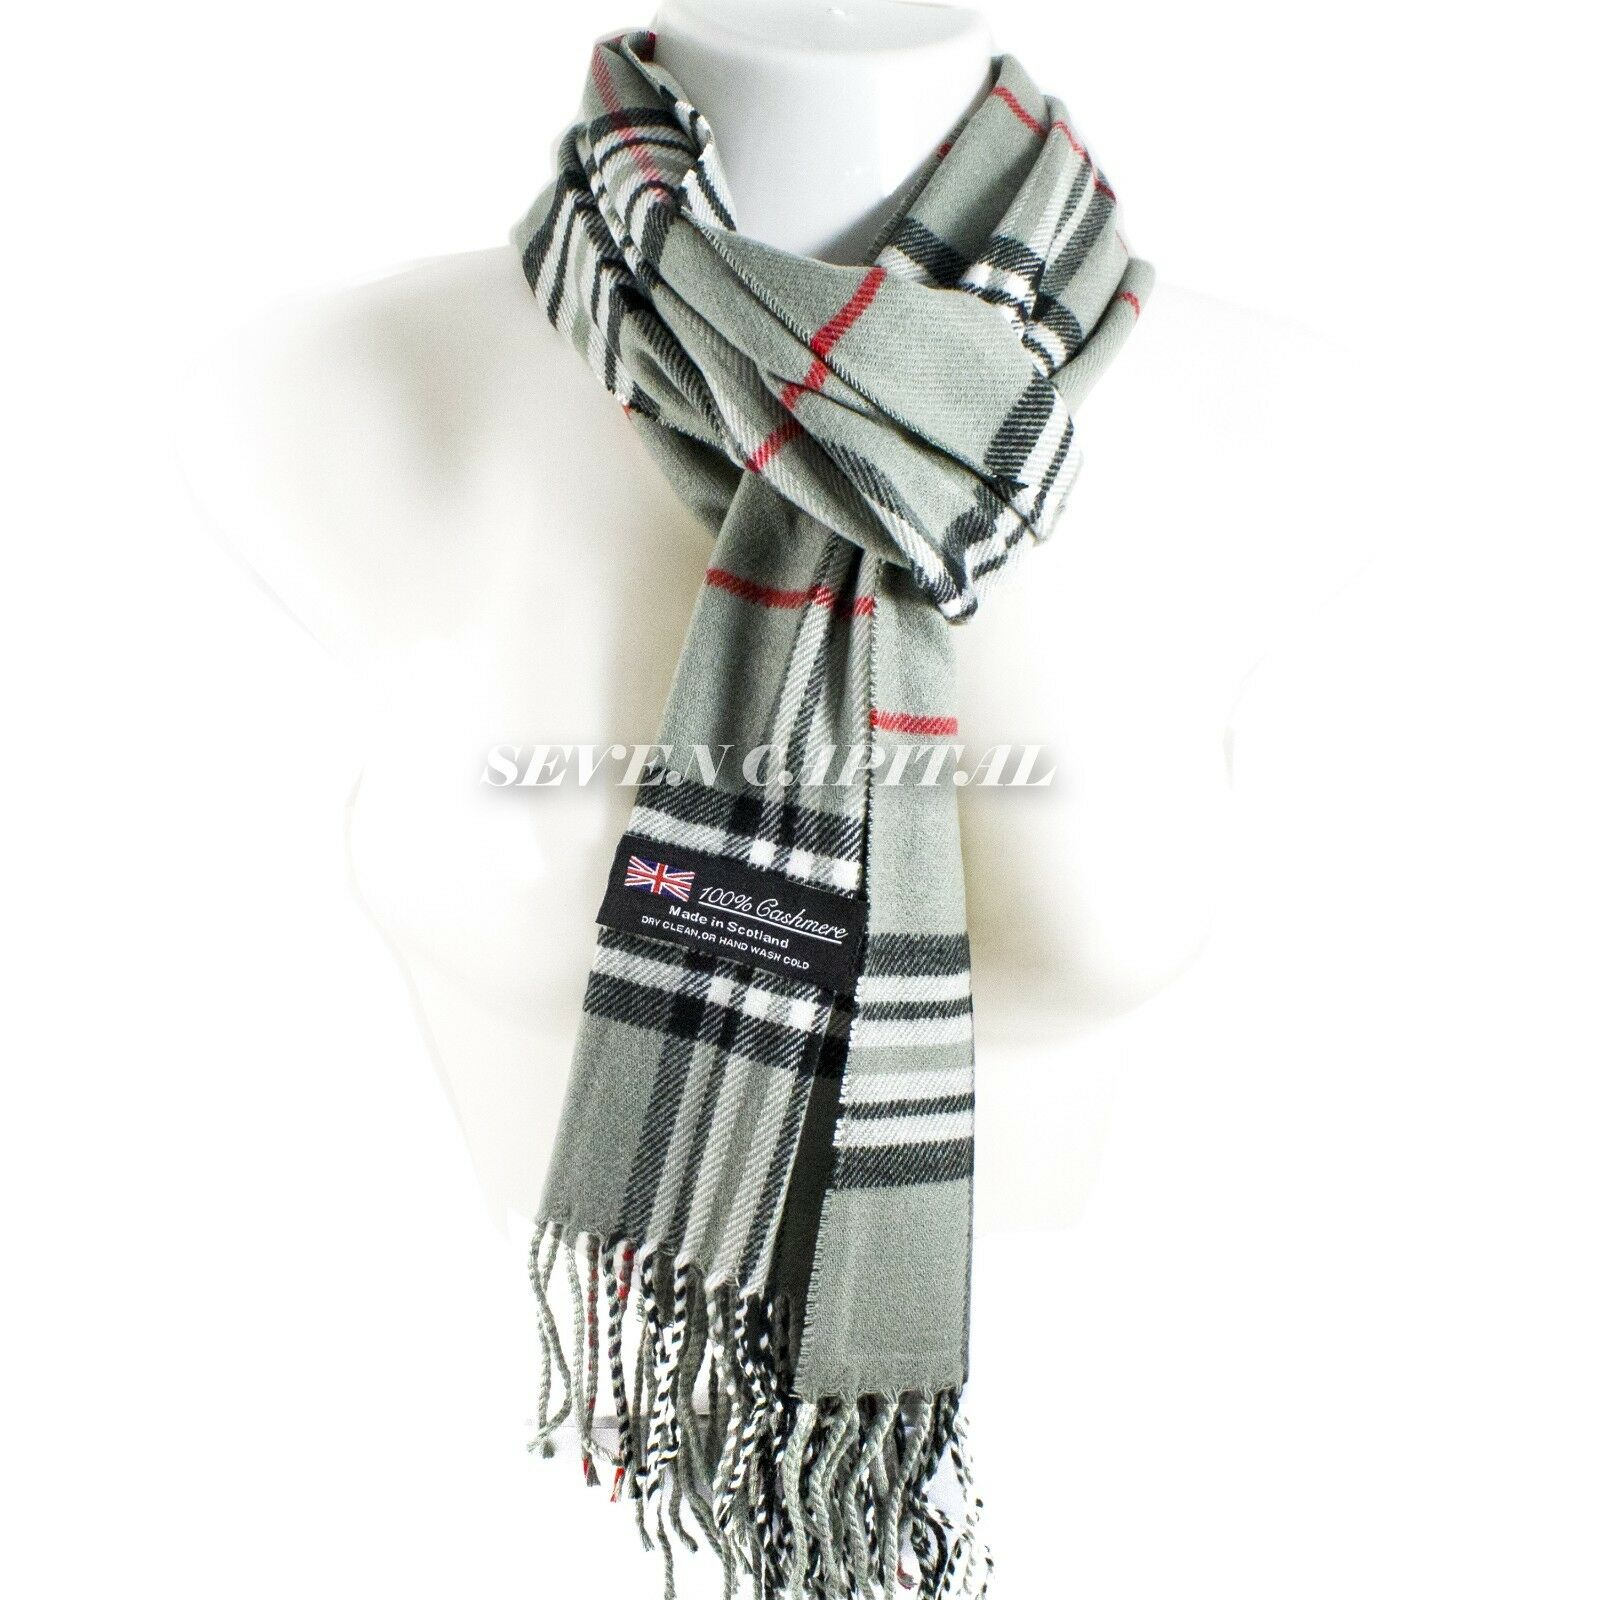 Mens Womens Winter Warm SCOTLAND Made 100% CASHMERE Scarf Scarves Plaid Wool 10. Plaid: Olive Green/White/Black